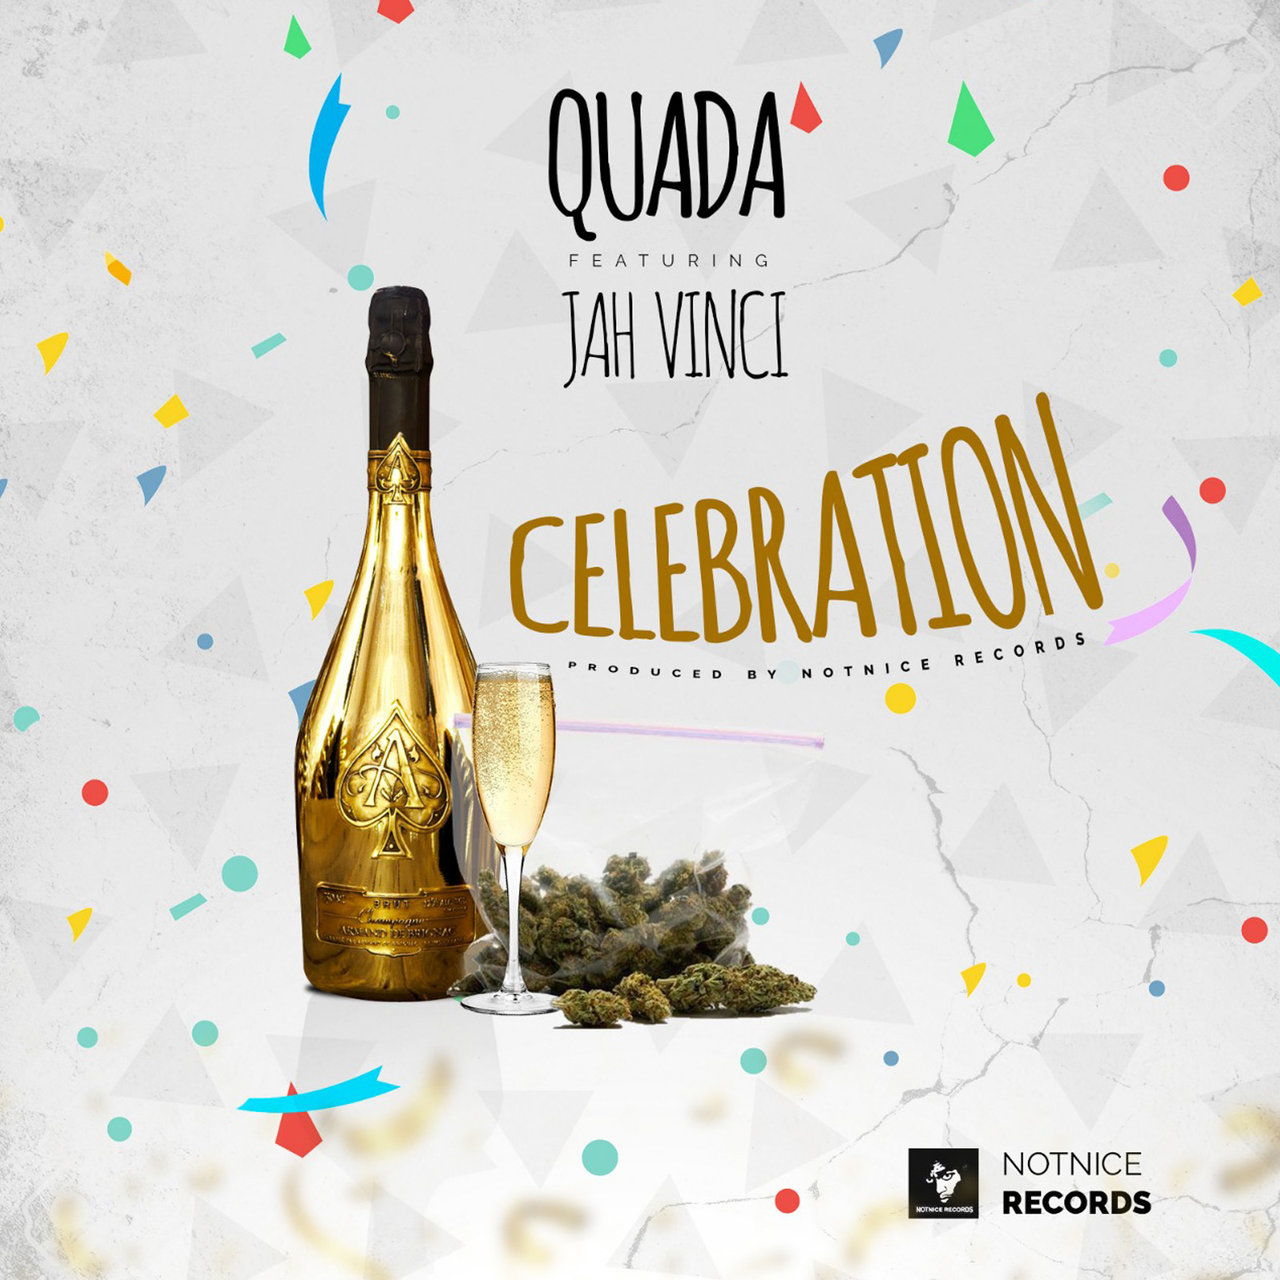 Celebration (feat. Jah Vinci)